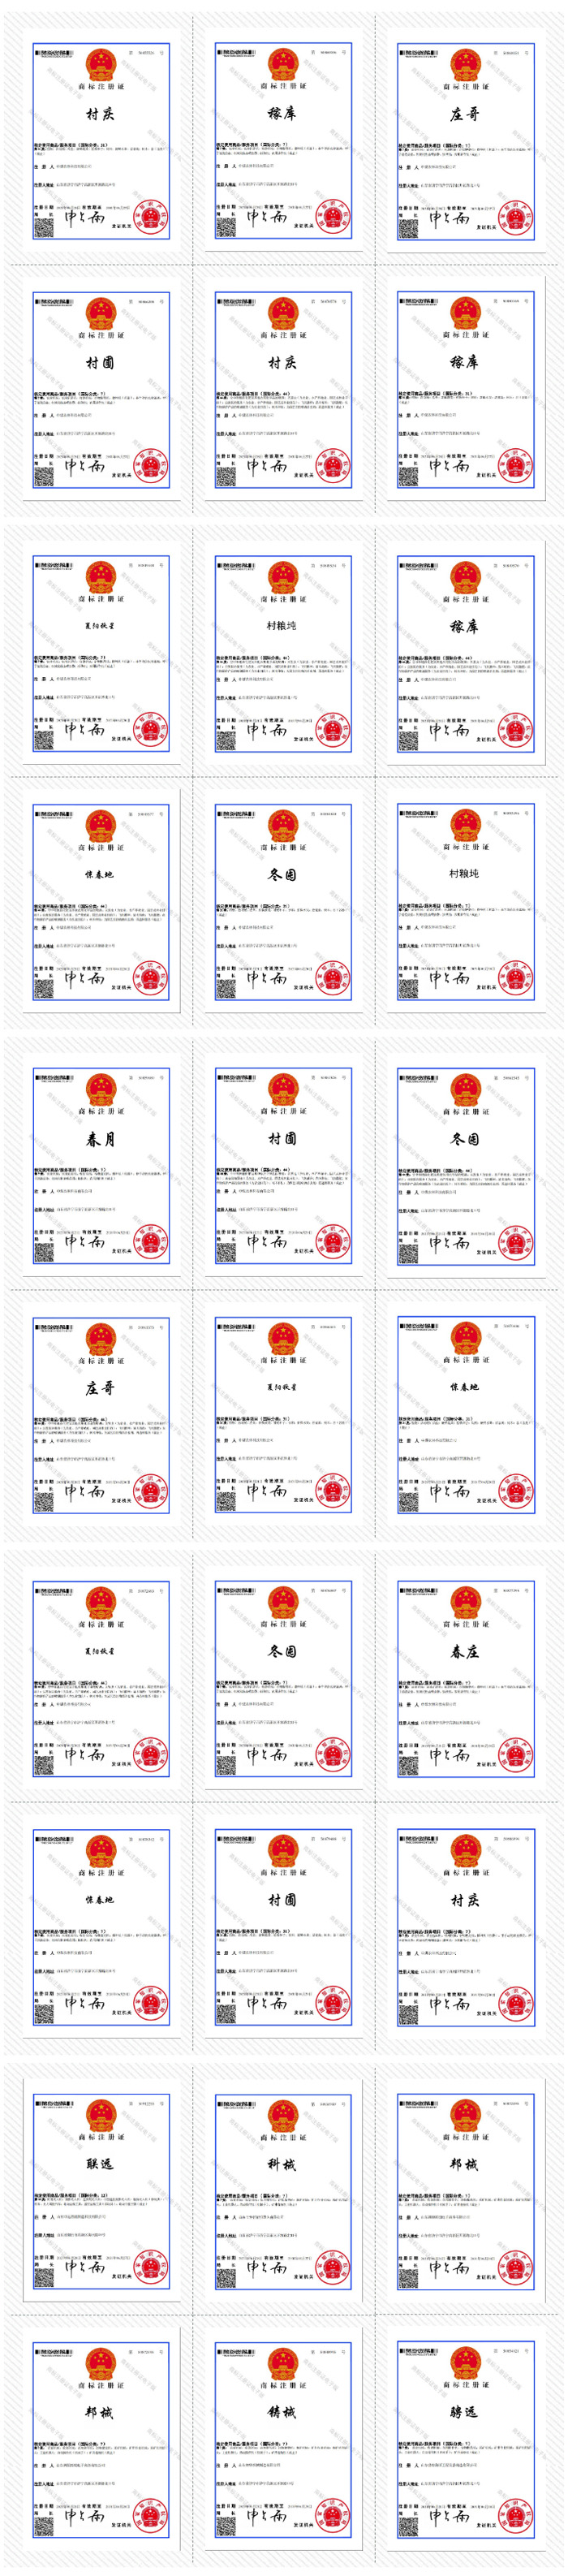 Congratulations To China Coal Group For Obtaining 30 National Trademark Registration Certificates